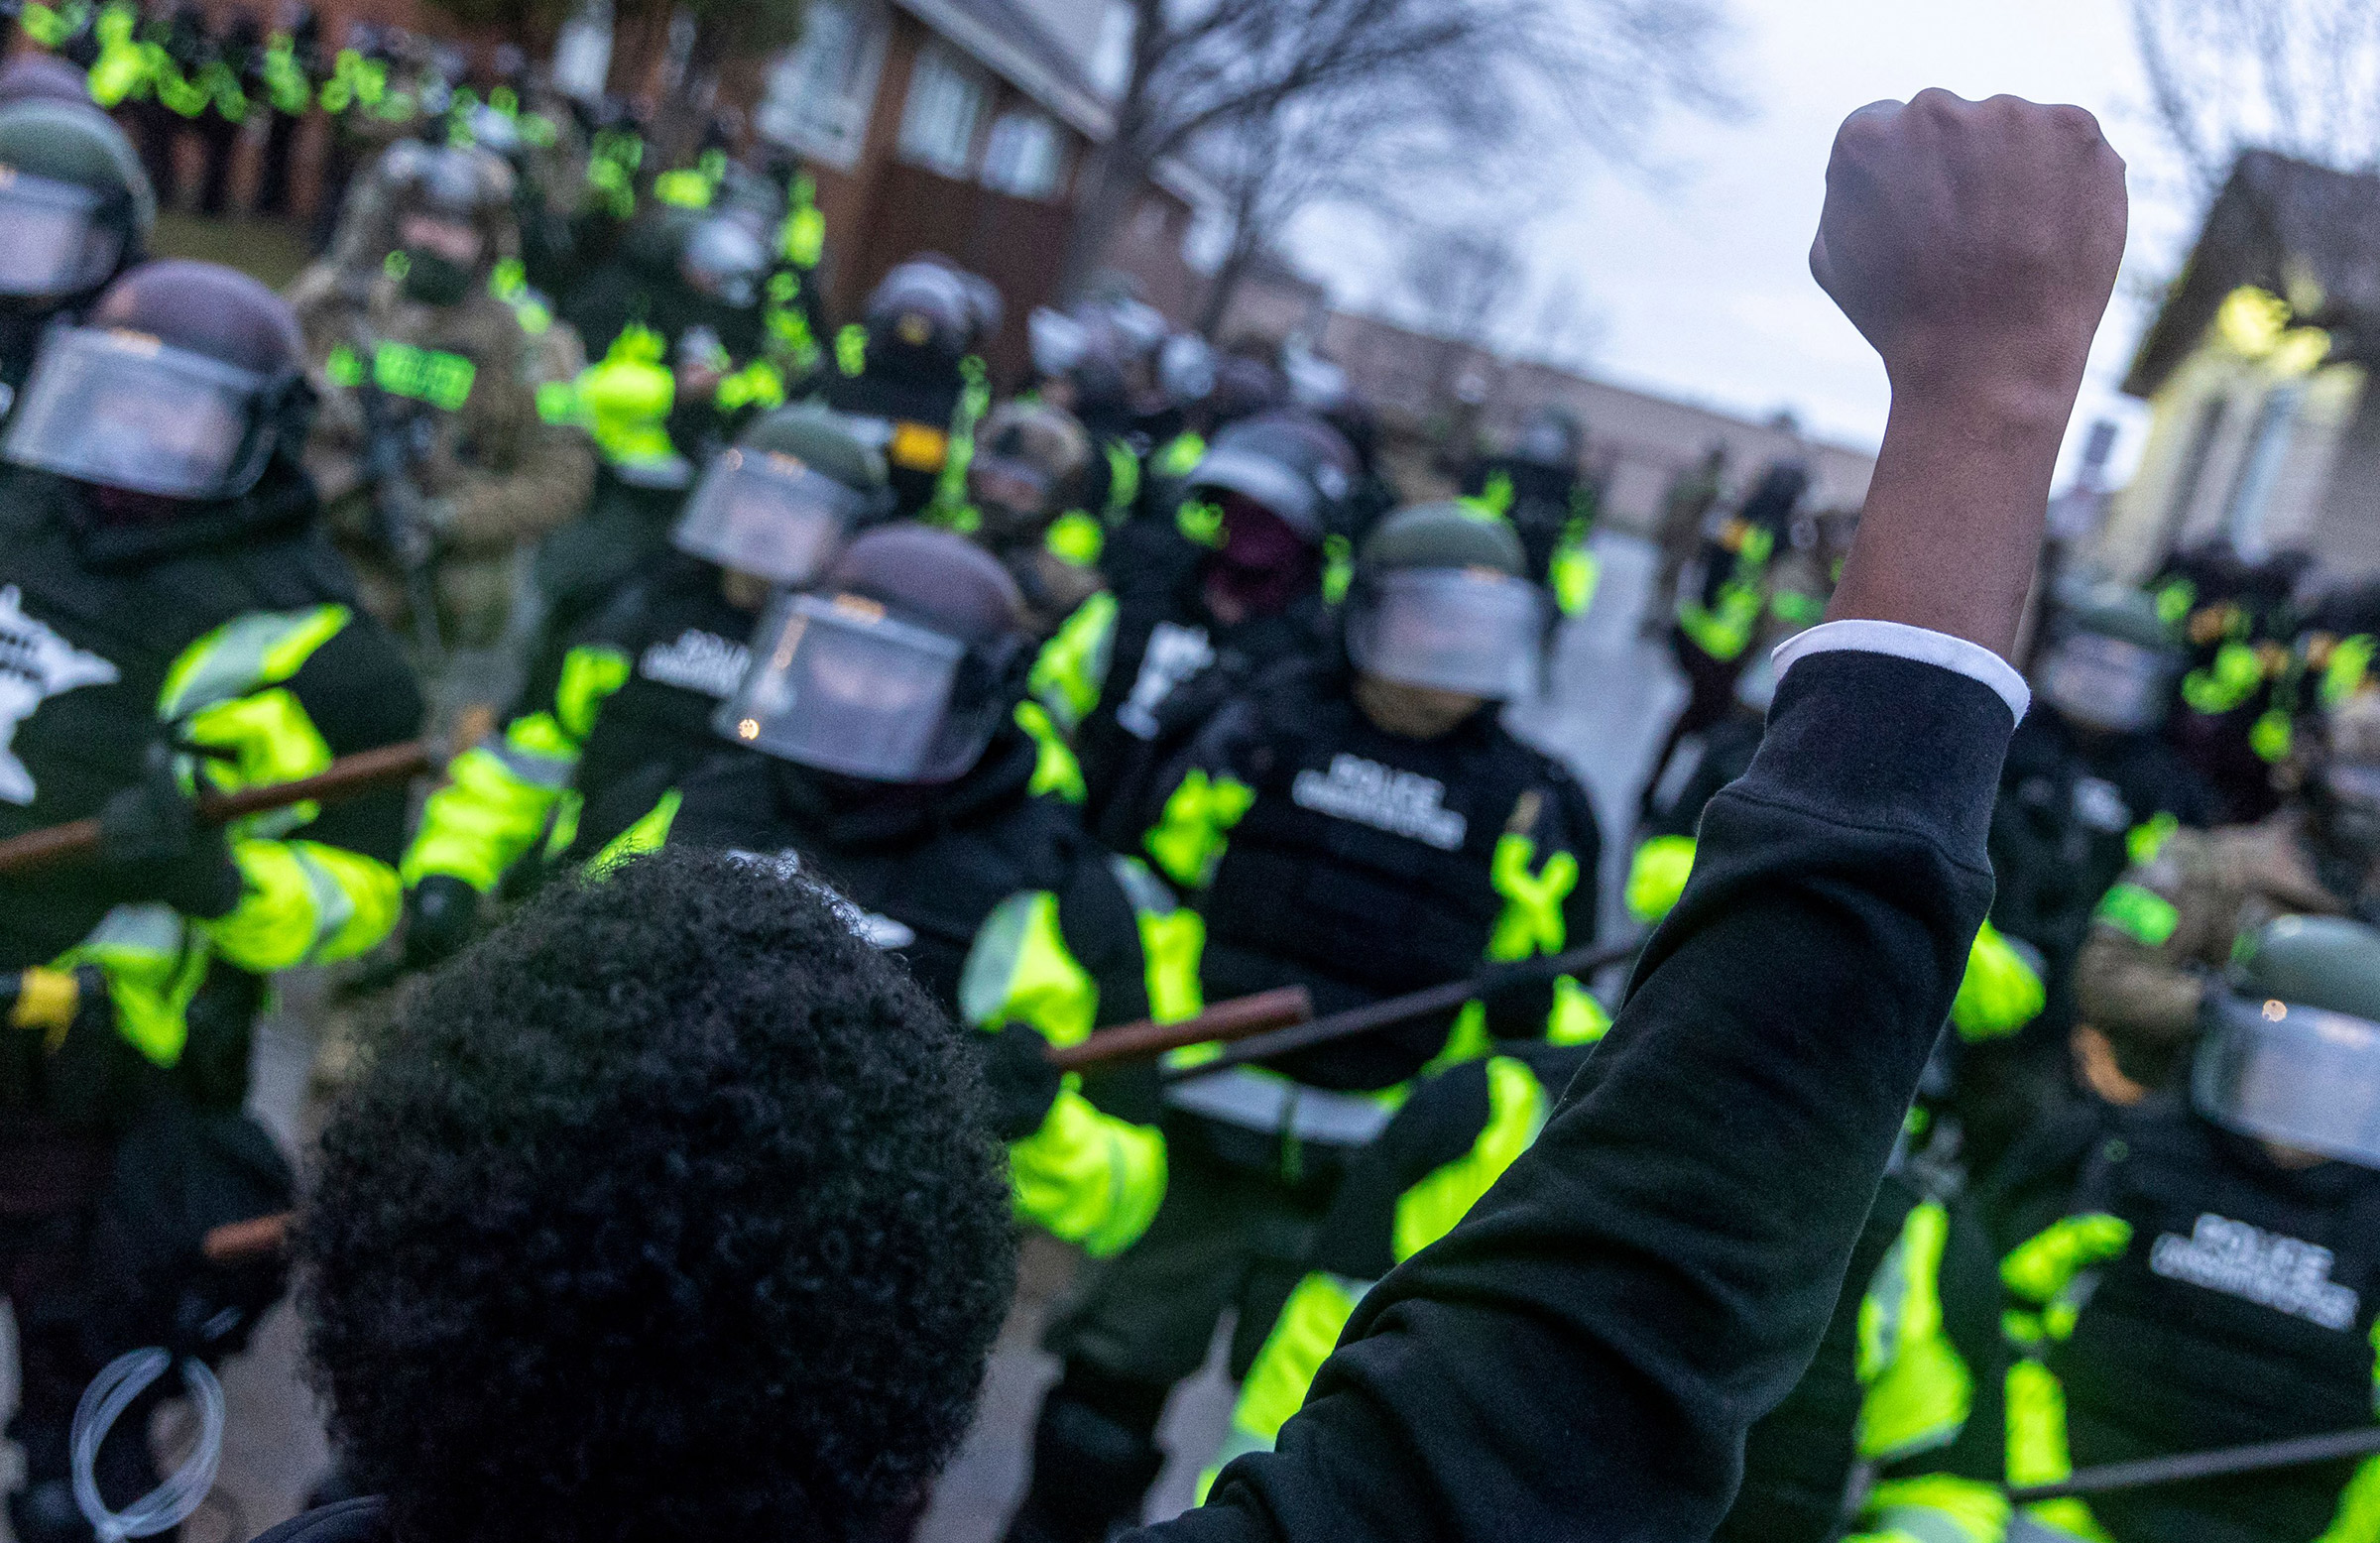 A man raises his fist as he faces the Minnesota State Troopers standing guard outside the Brooklyn Center Police Station after a police officer shot and killed 20-year-old Daunte Wright during a traffic stop in Brooklyn Center, Minneapolis, Minnesota on April 12, 2021.